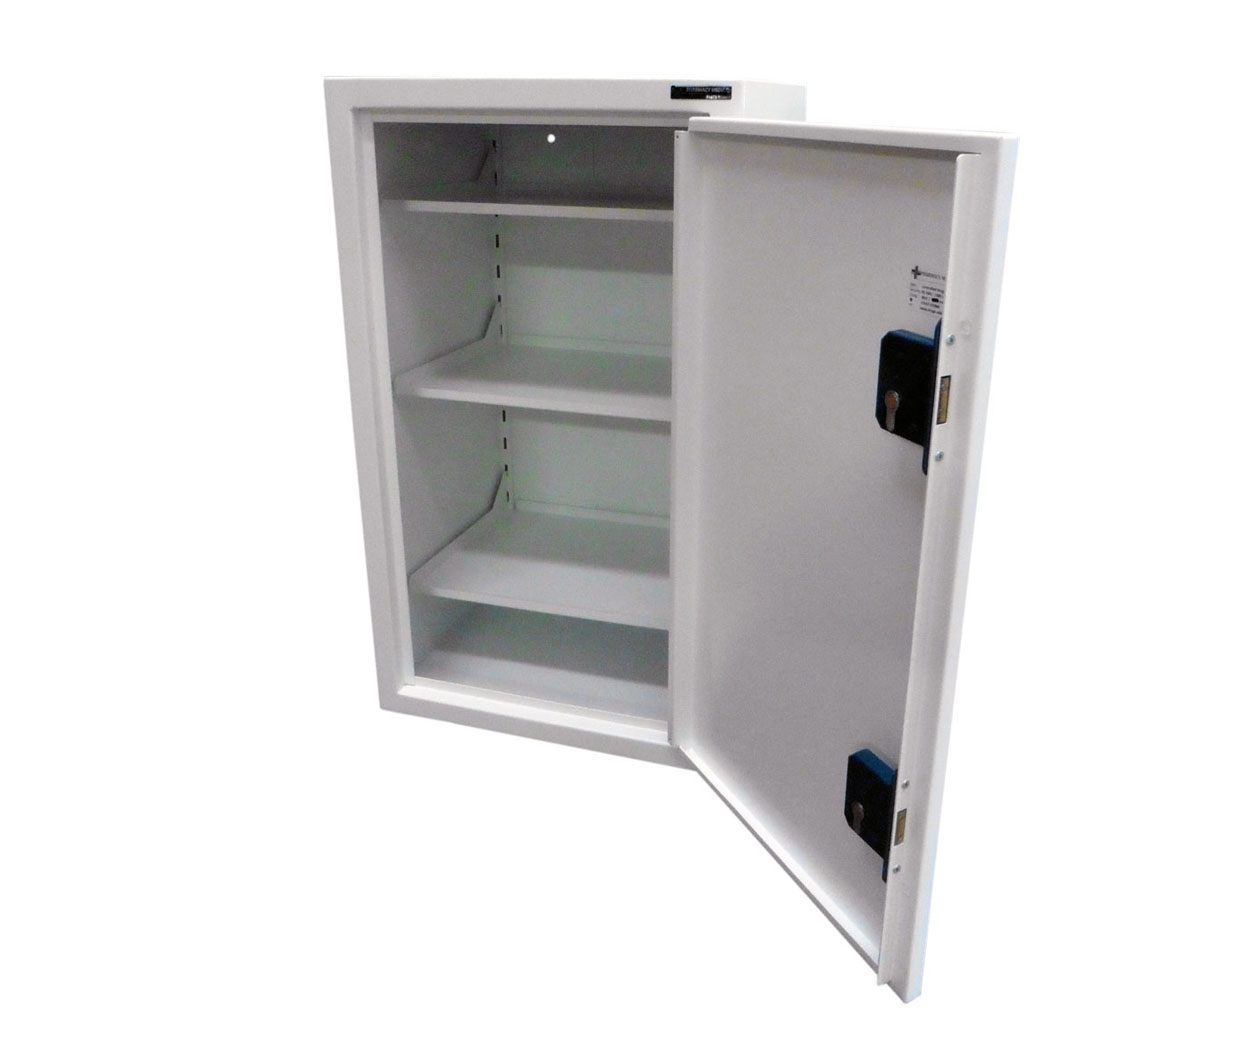 Controlled Drug Cabinet 850mm x 500mm x 450mm with warning light